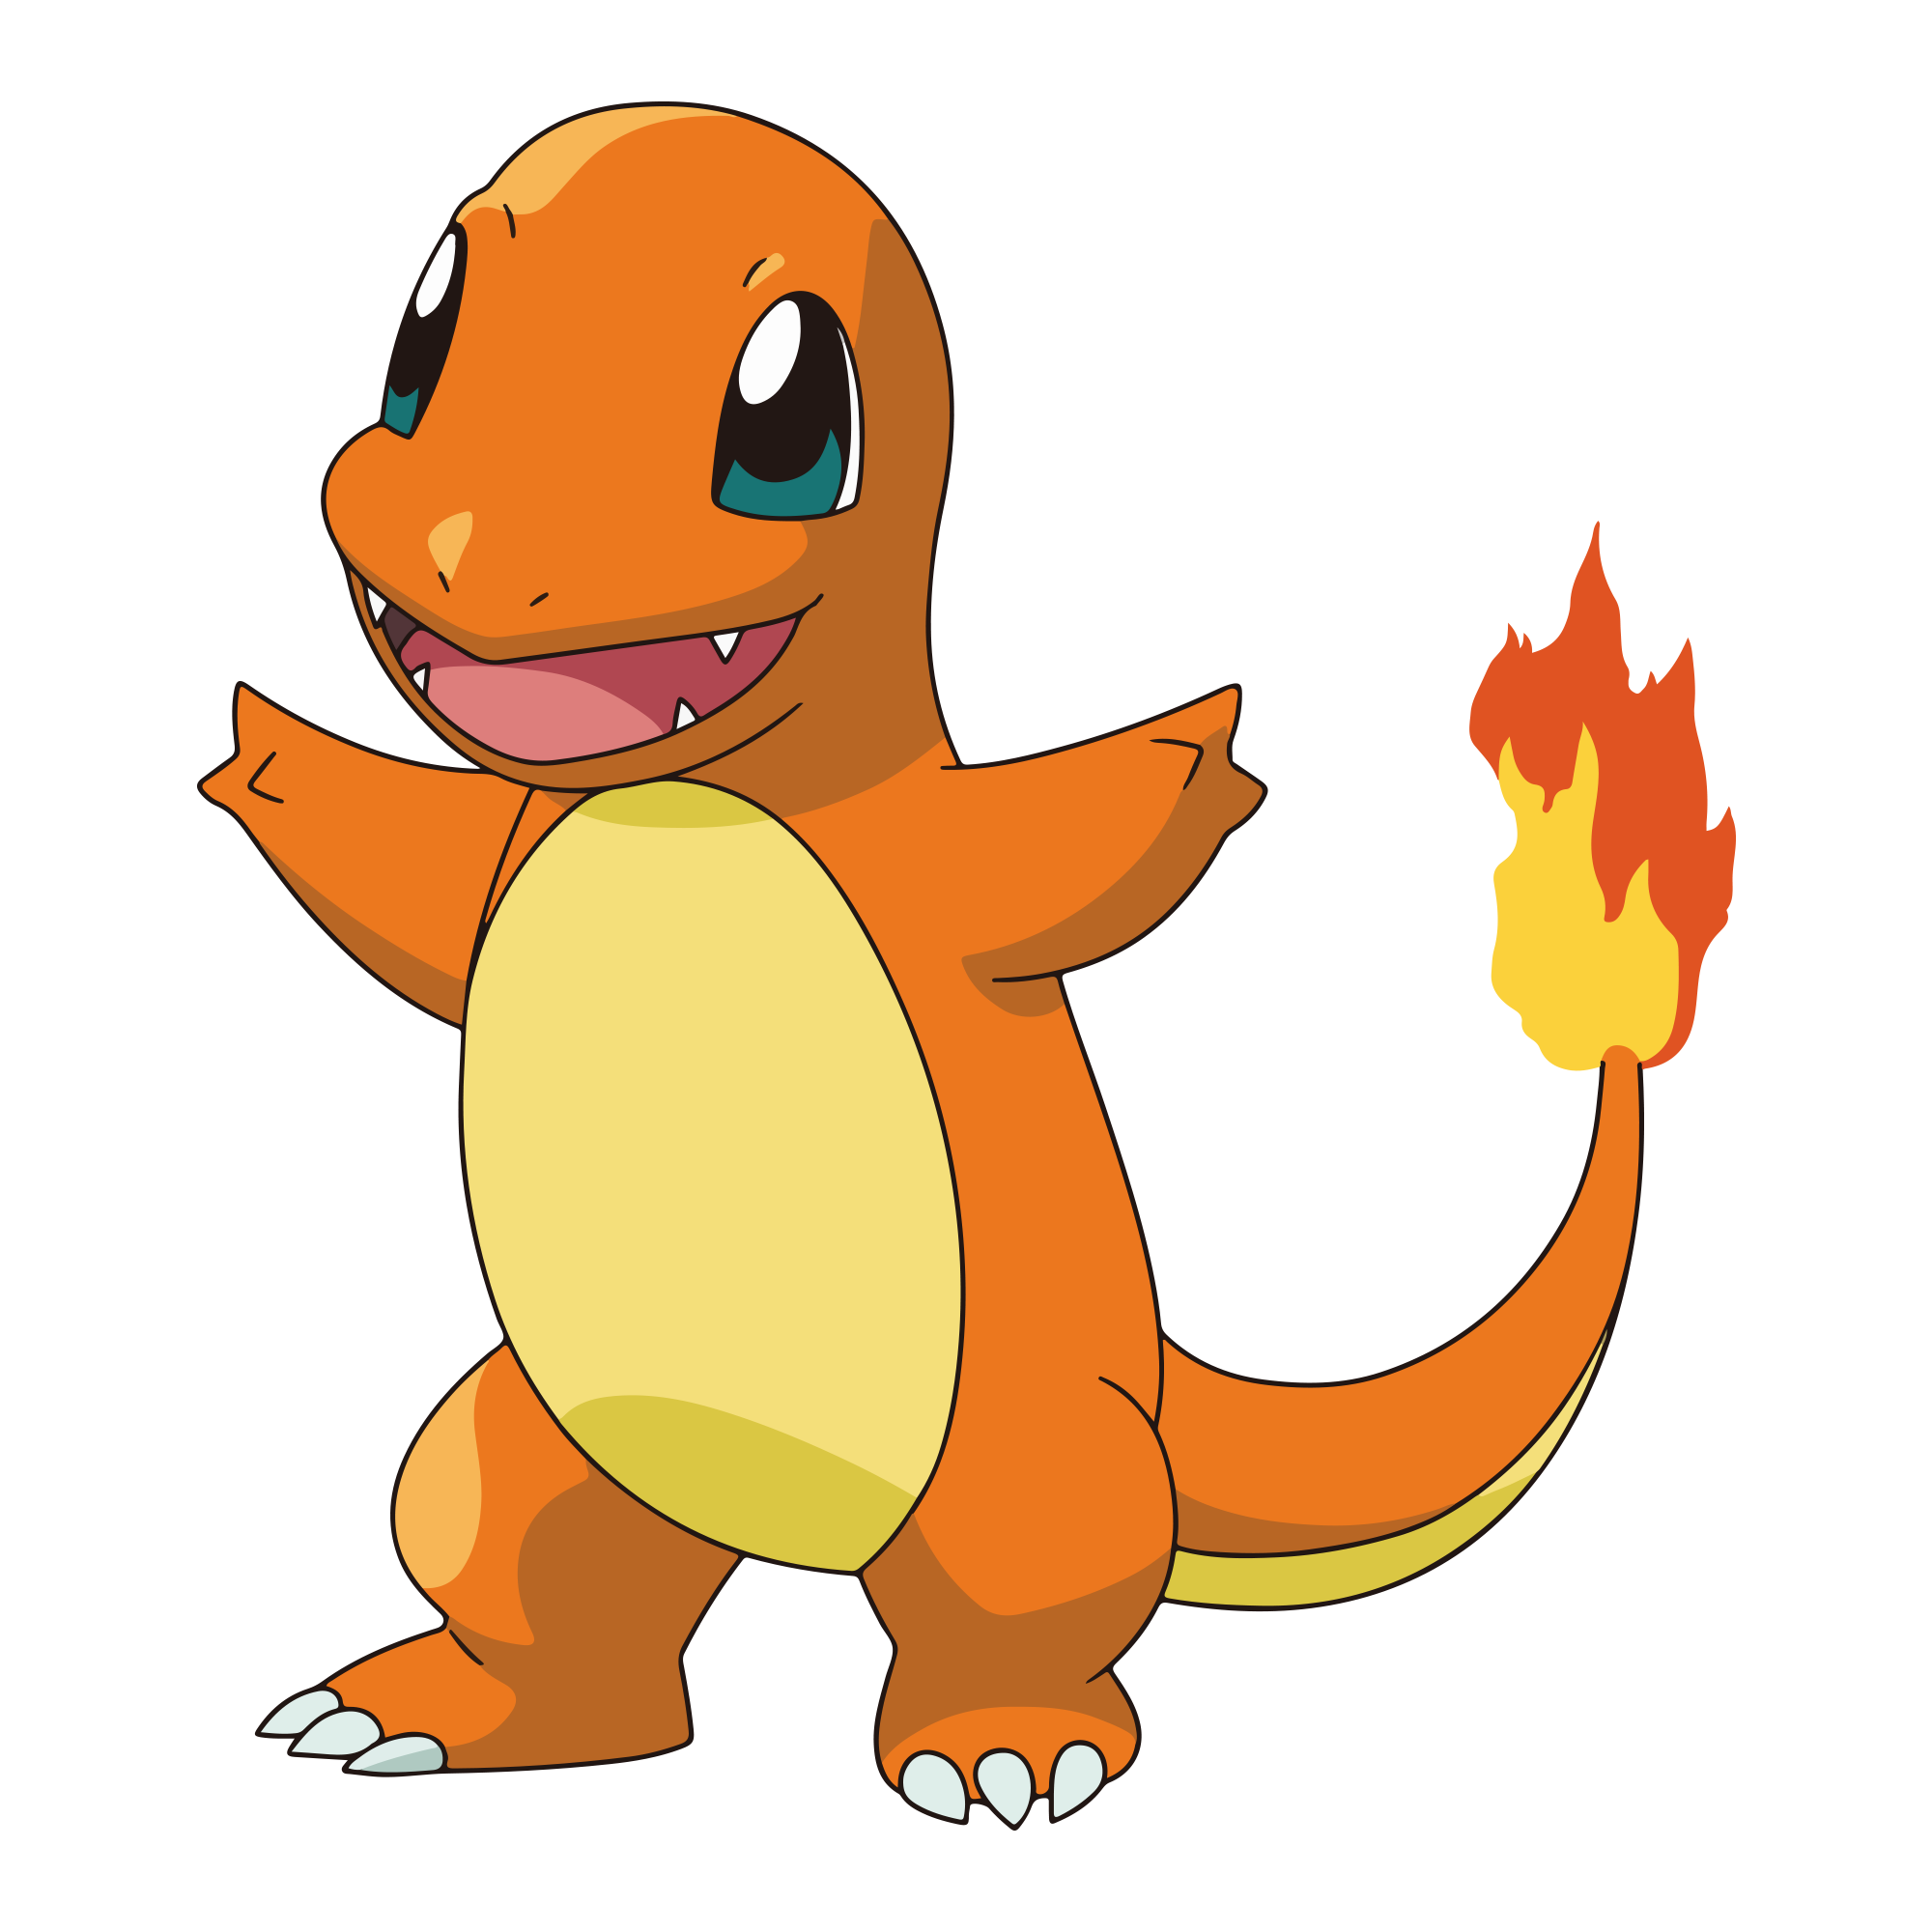 charizard vector charmander